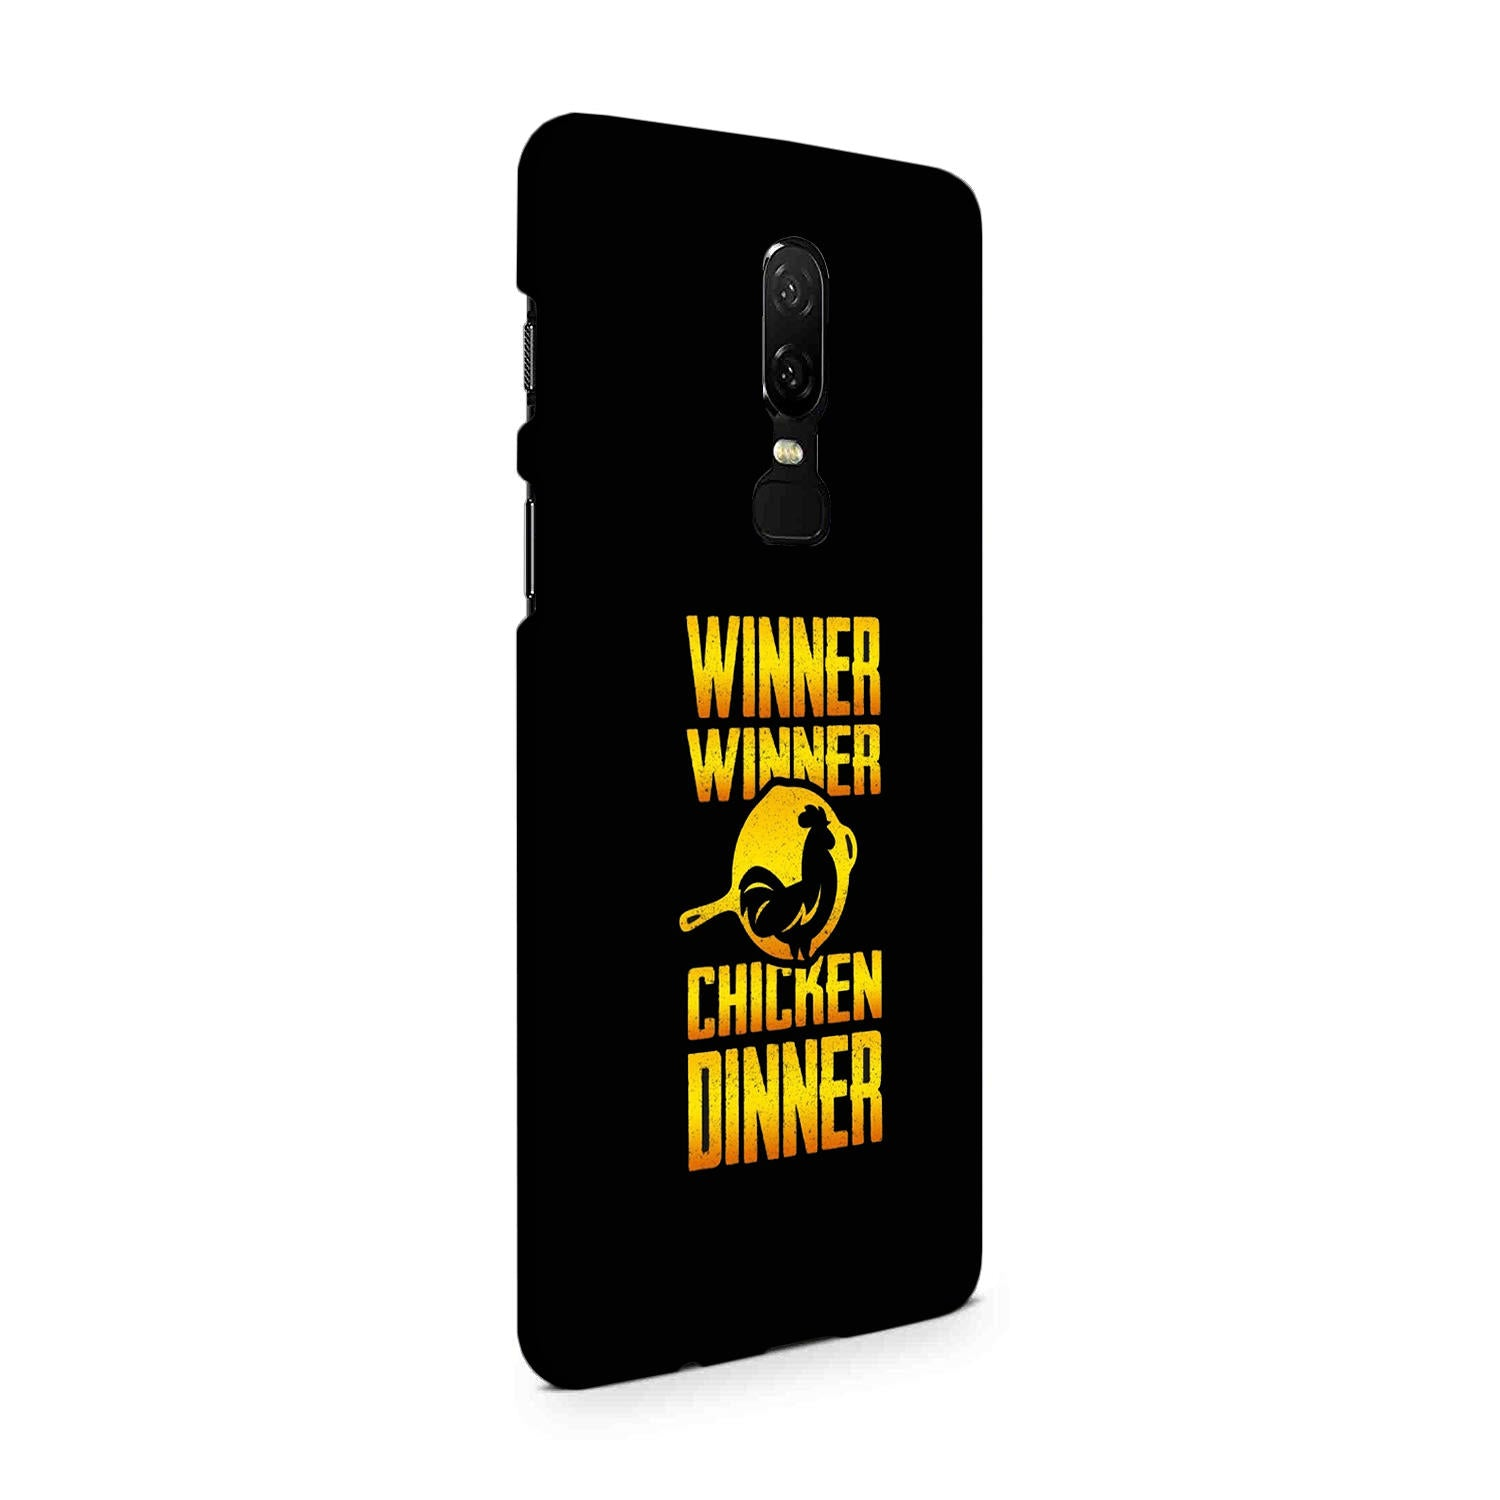 Chicken Dinner Pan For Winner Typography OnePlus 6 Mobile Cover Case - MADANYU